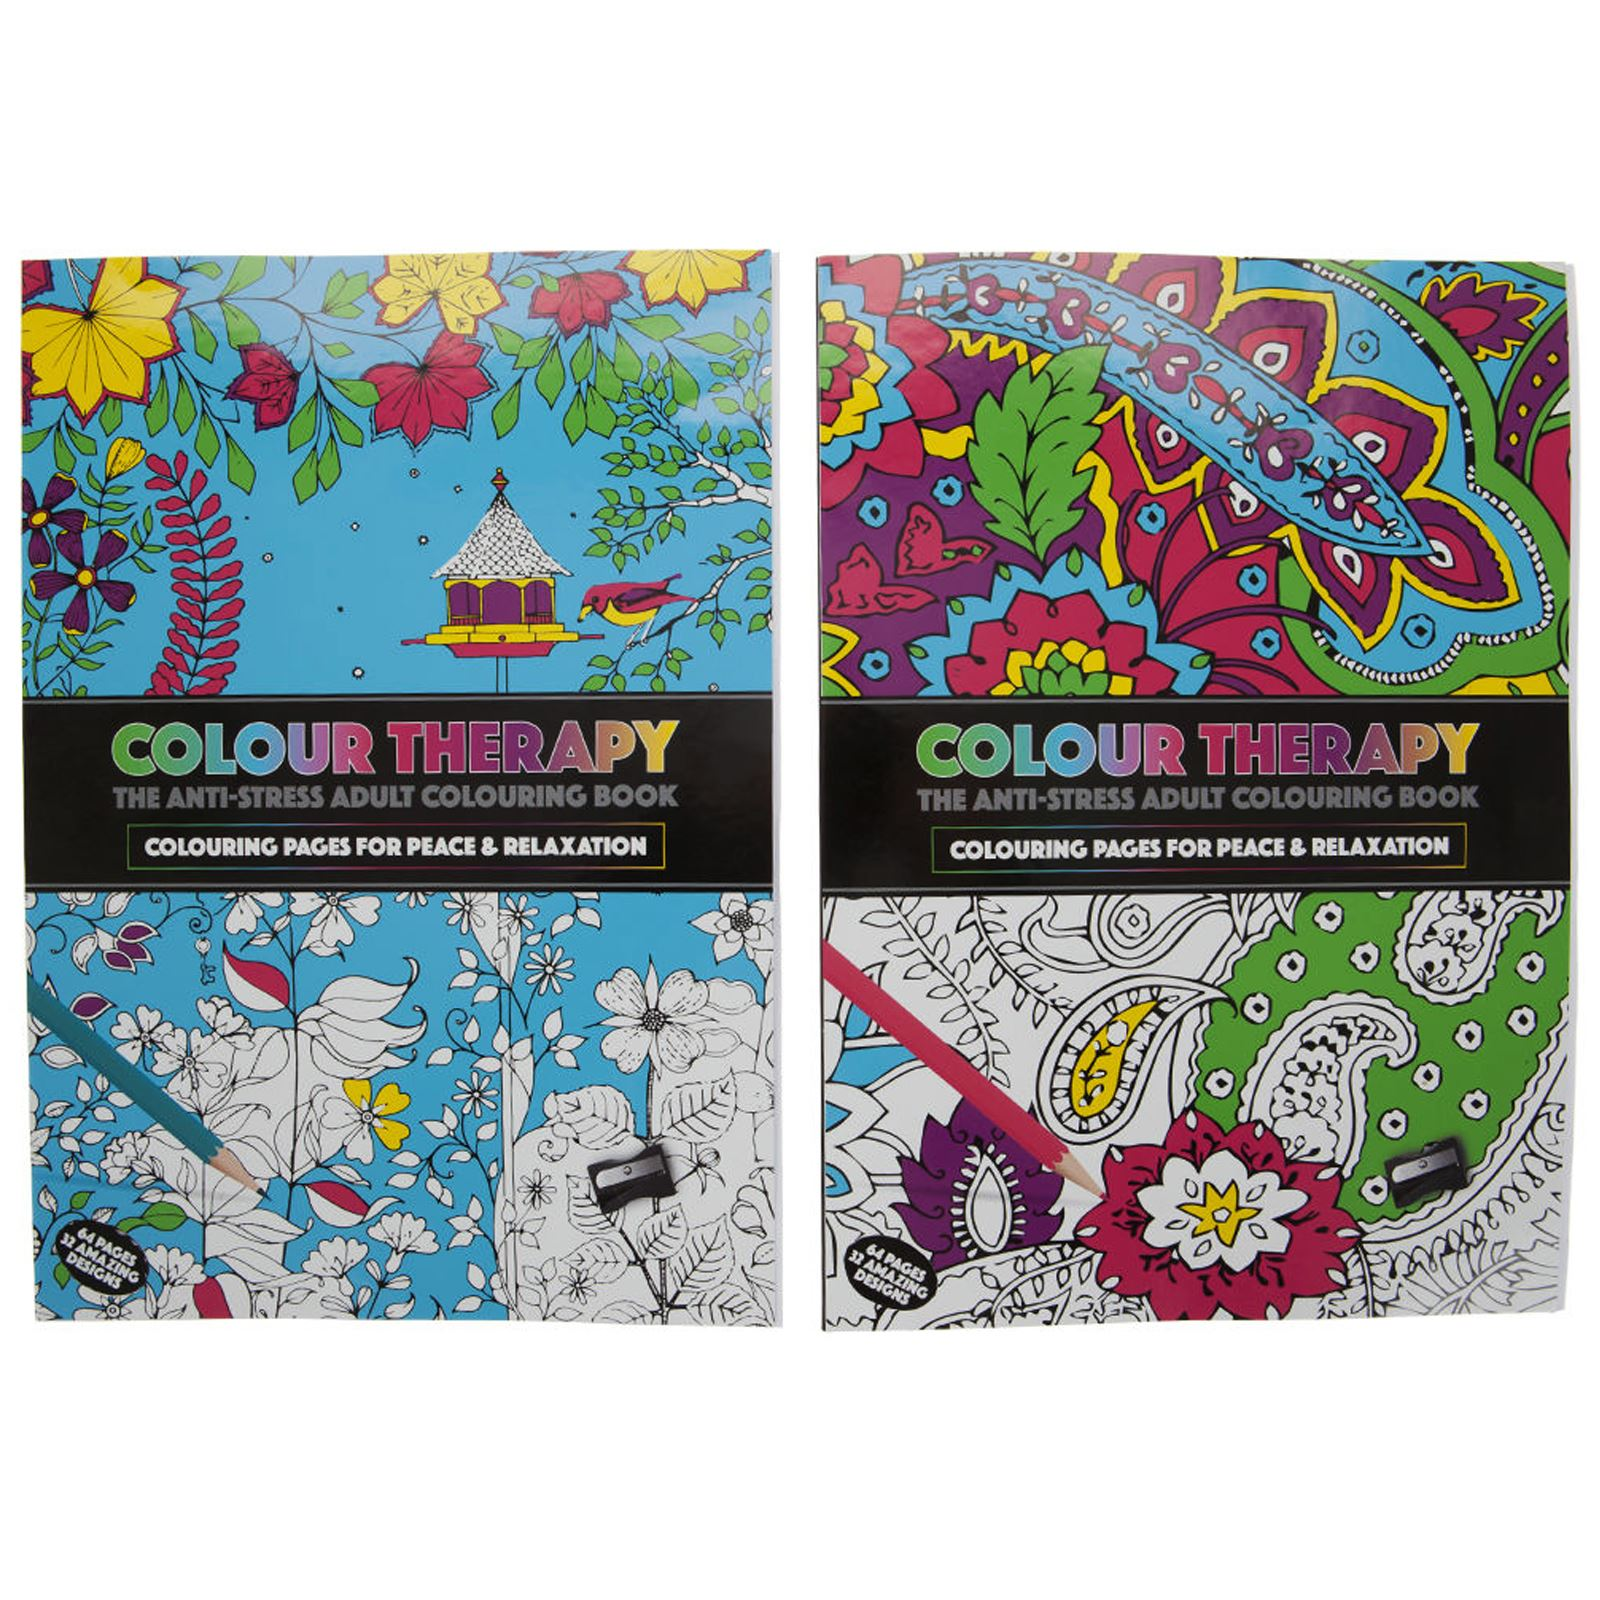 New Anti Stress Colour Therapy Colouring Books Pencils Set